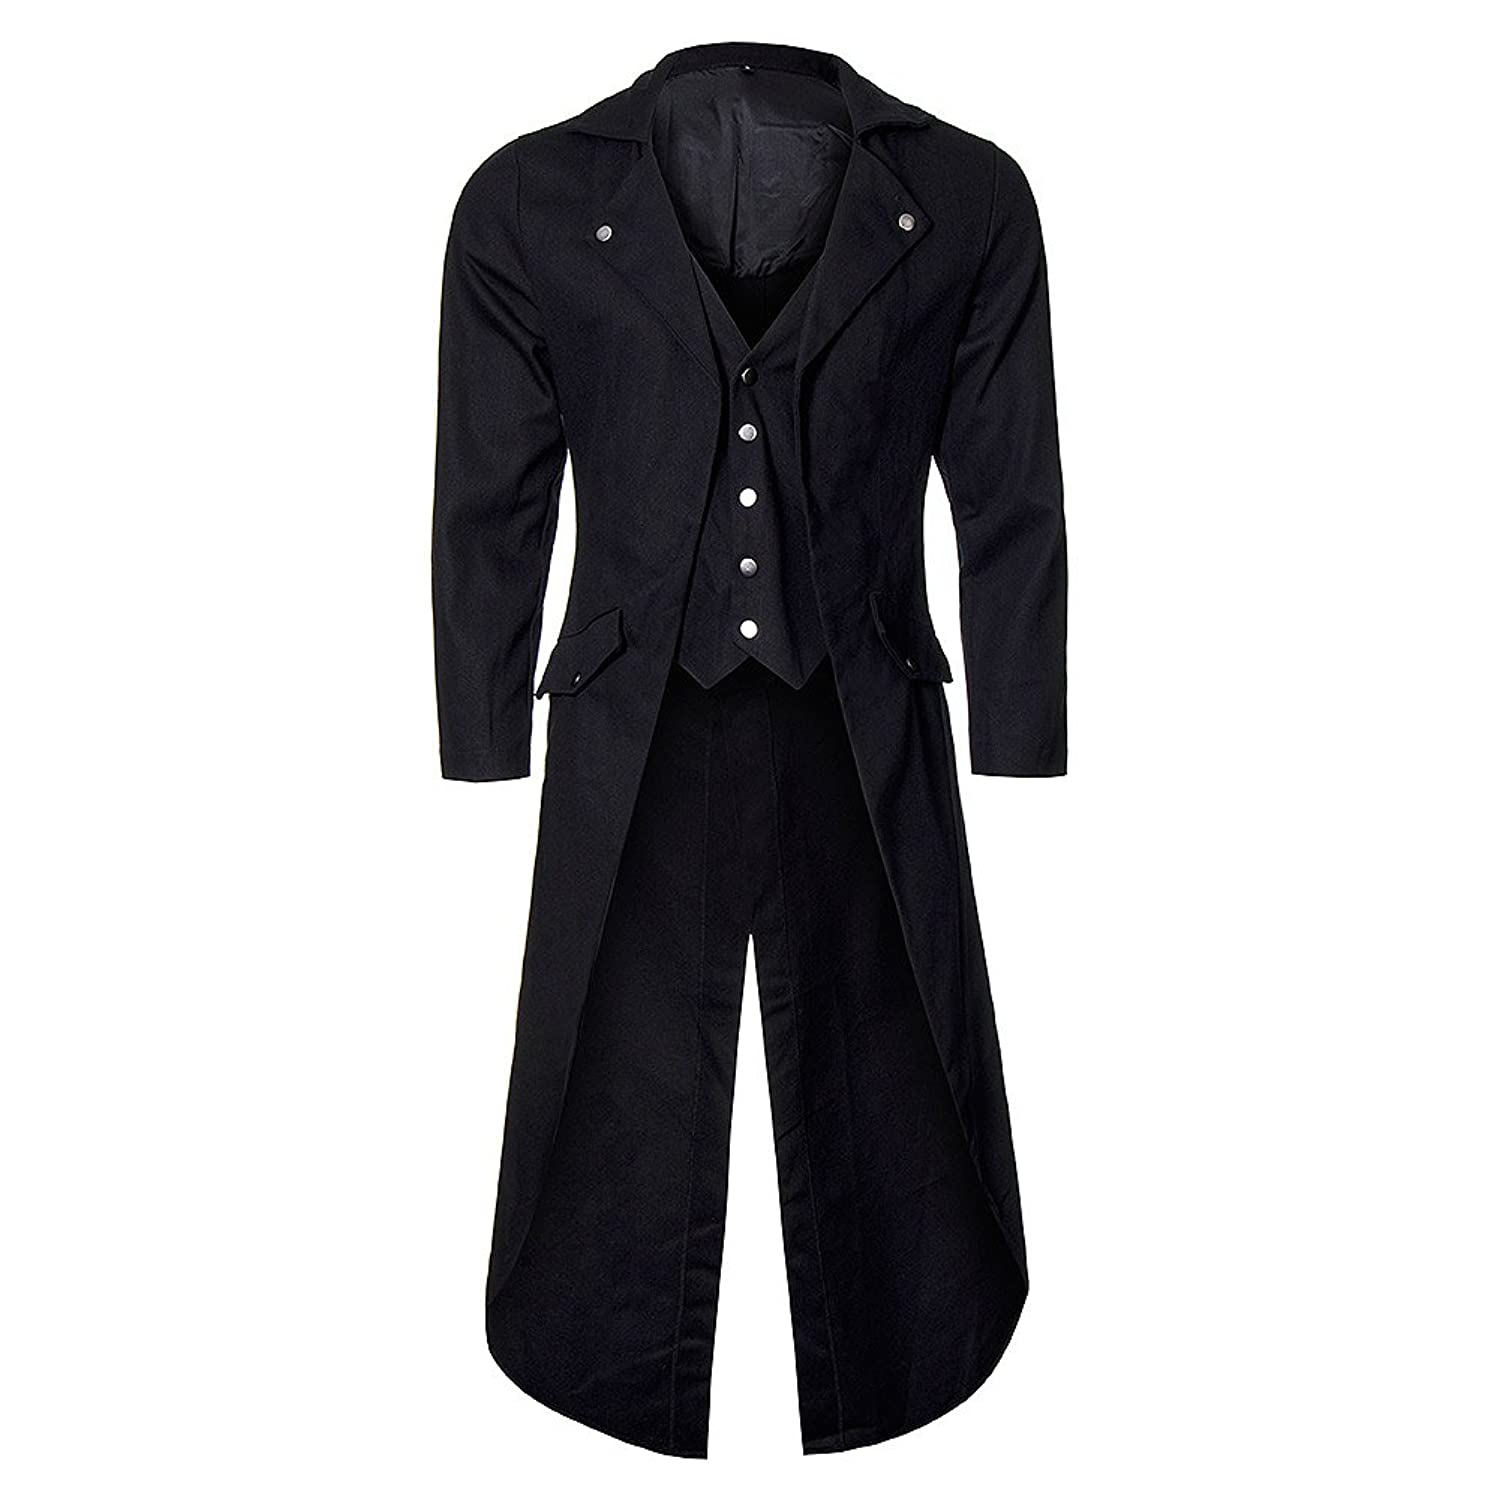 Victorian Men's Clothing Banned Unisex-adults Frock Tail Coat $99.16 AT vintagedancer.com